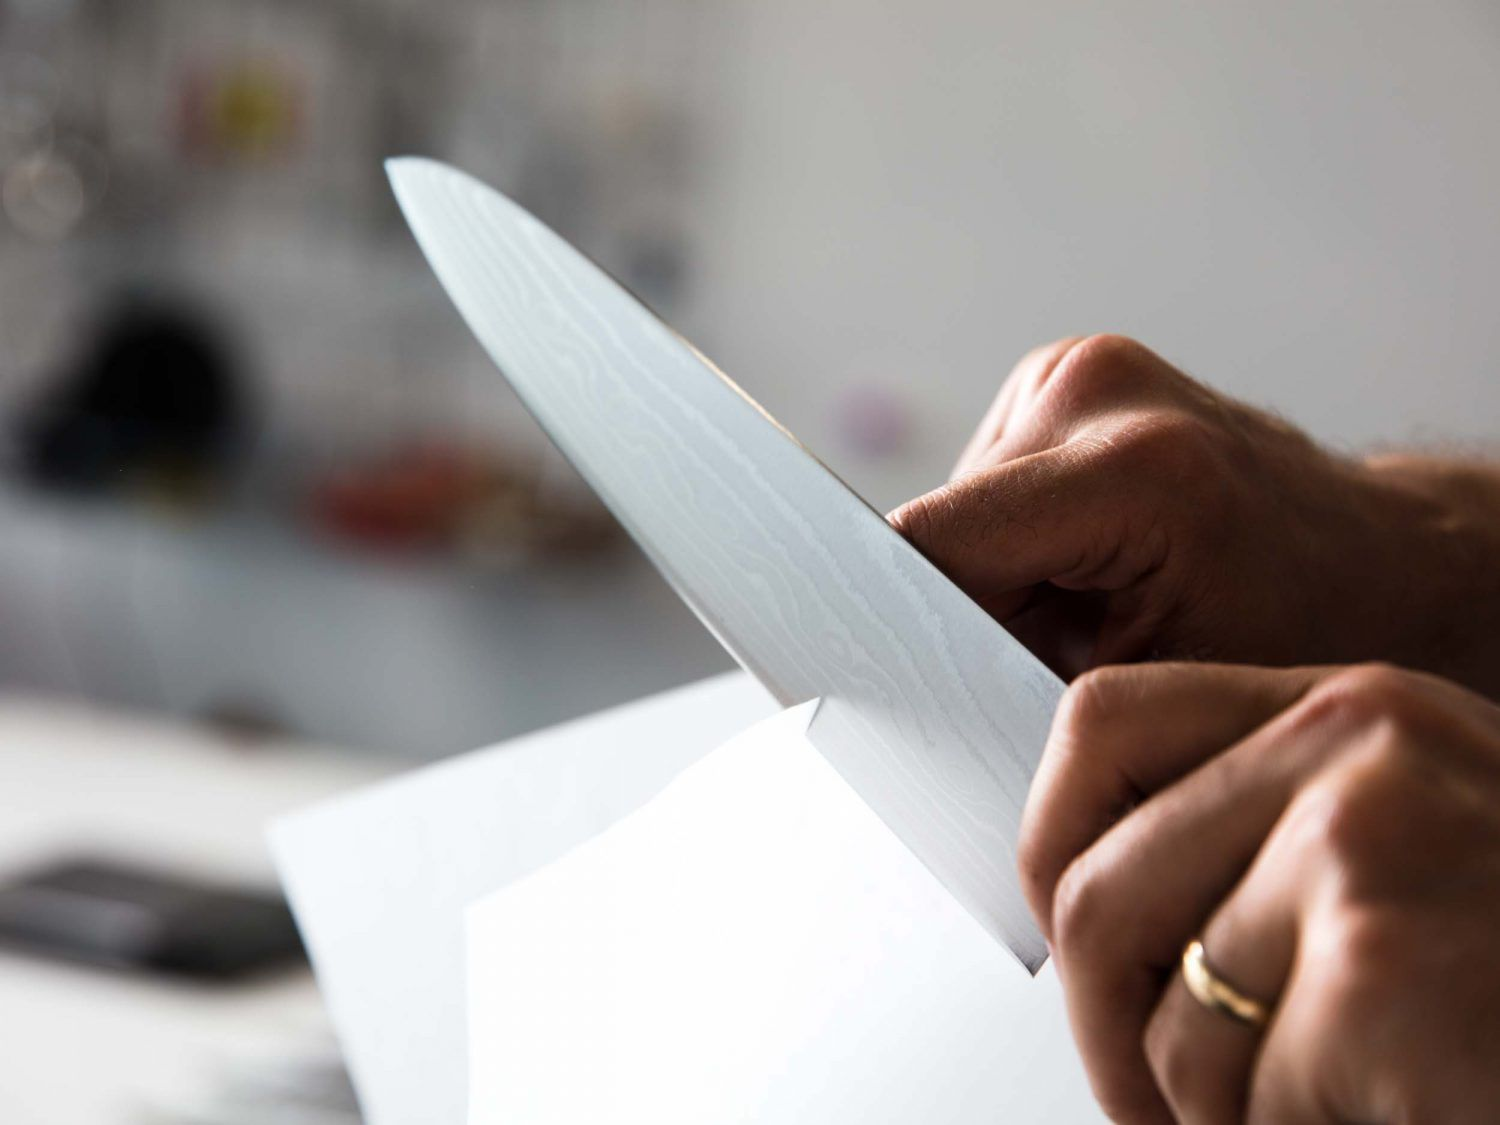 Cutting through paper with the blade of a chef's knife